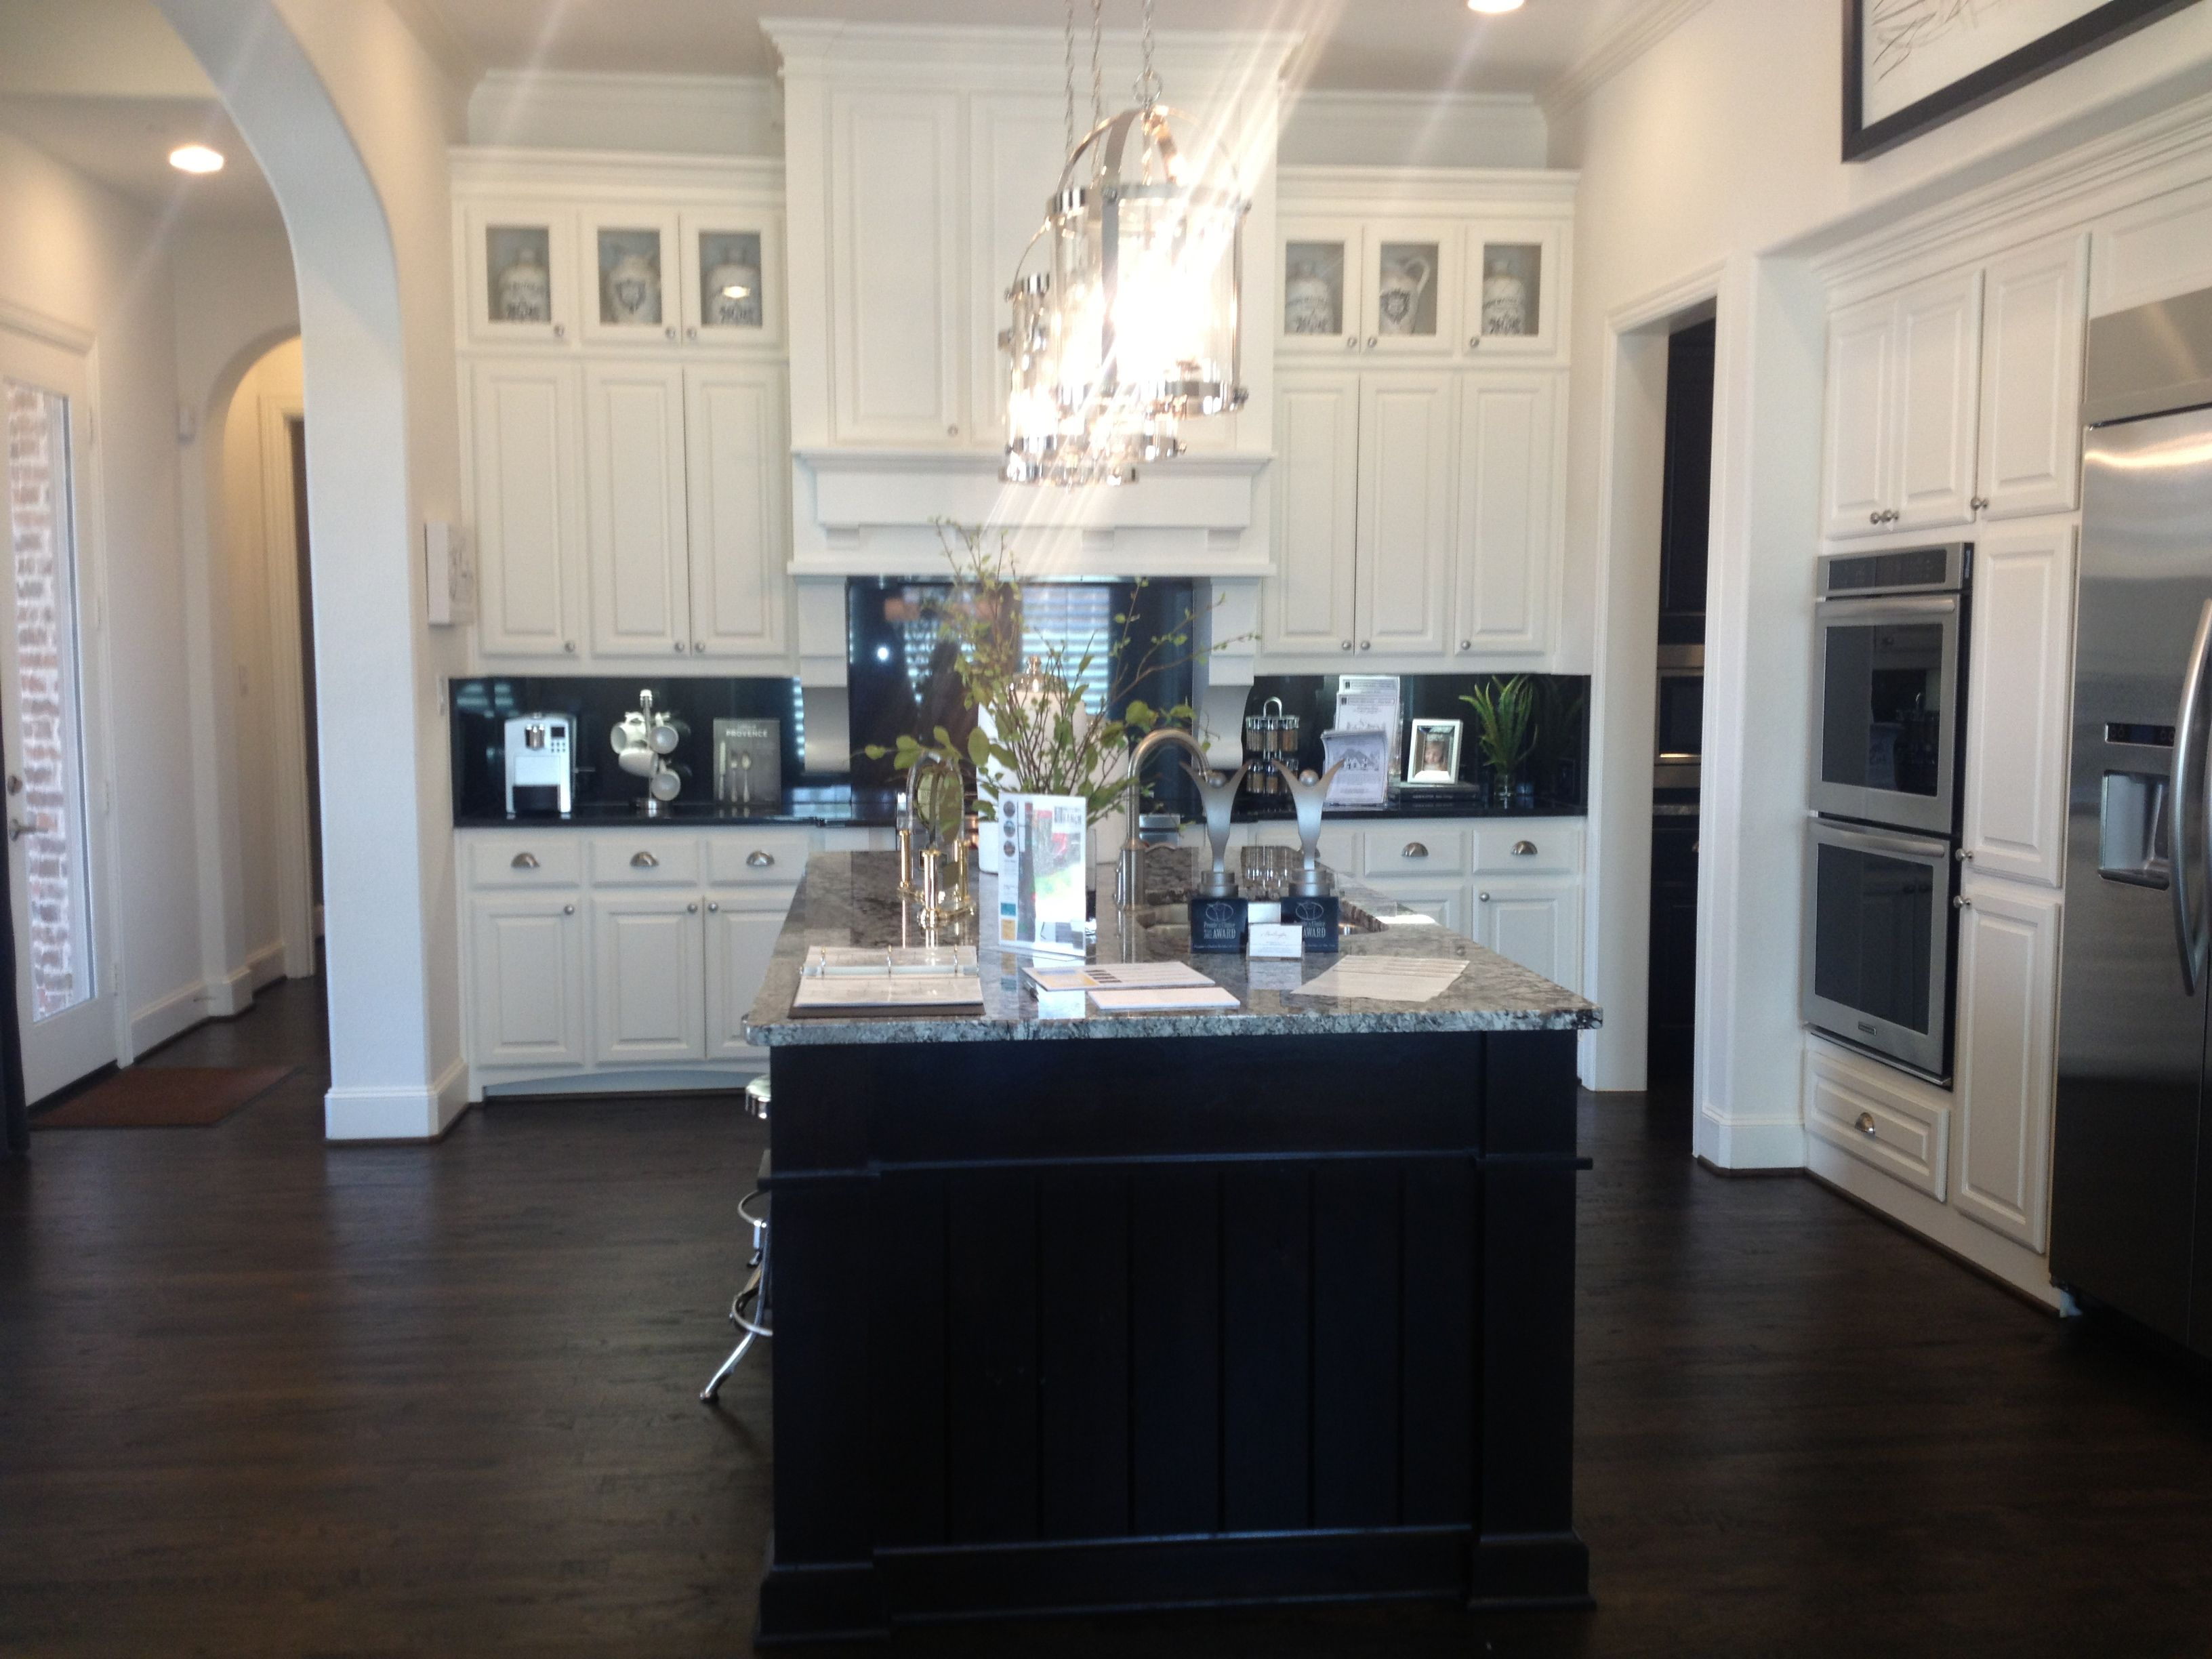 Kitchen Design Ideas Dark Floors Ideas Gorgeous Black And White Kitchen Design Dark Wood